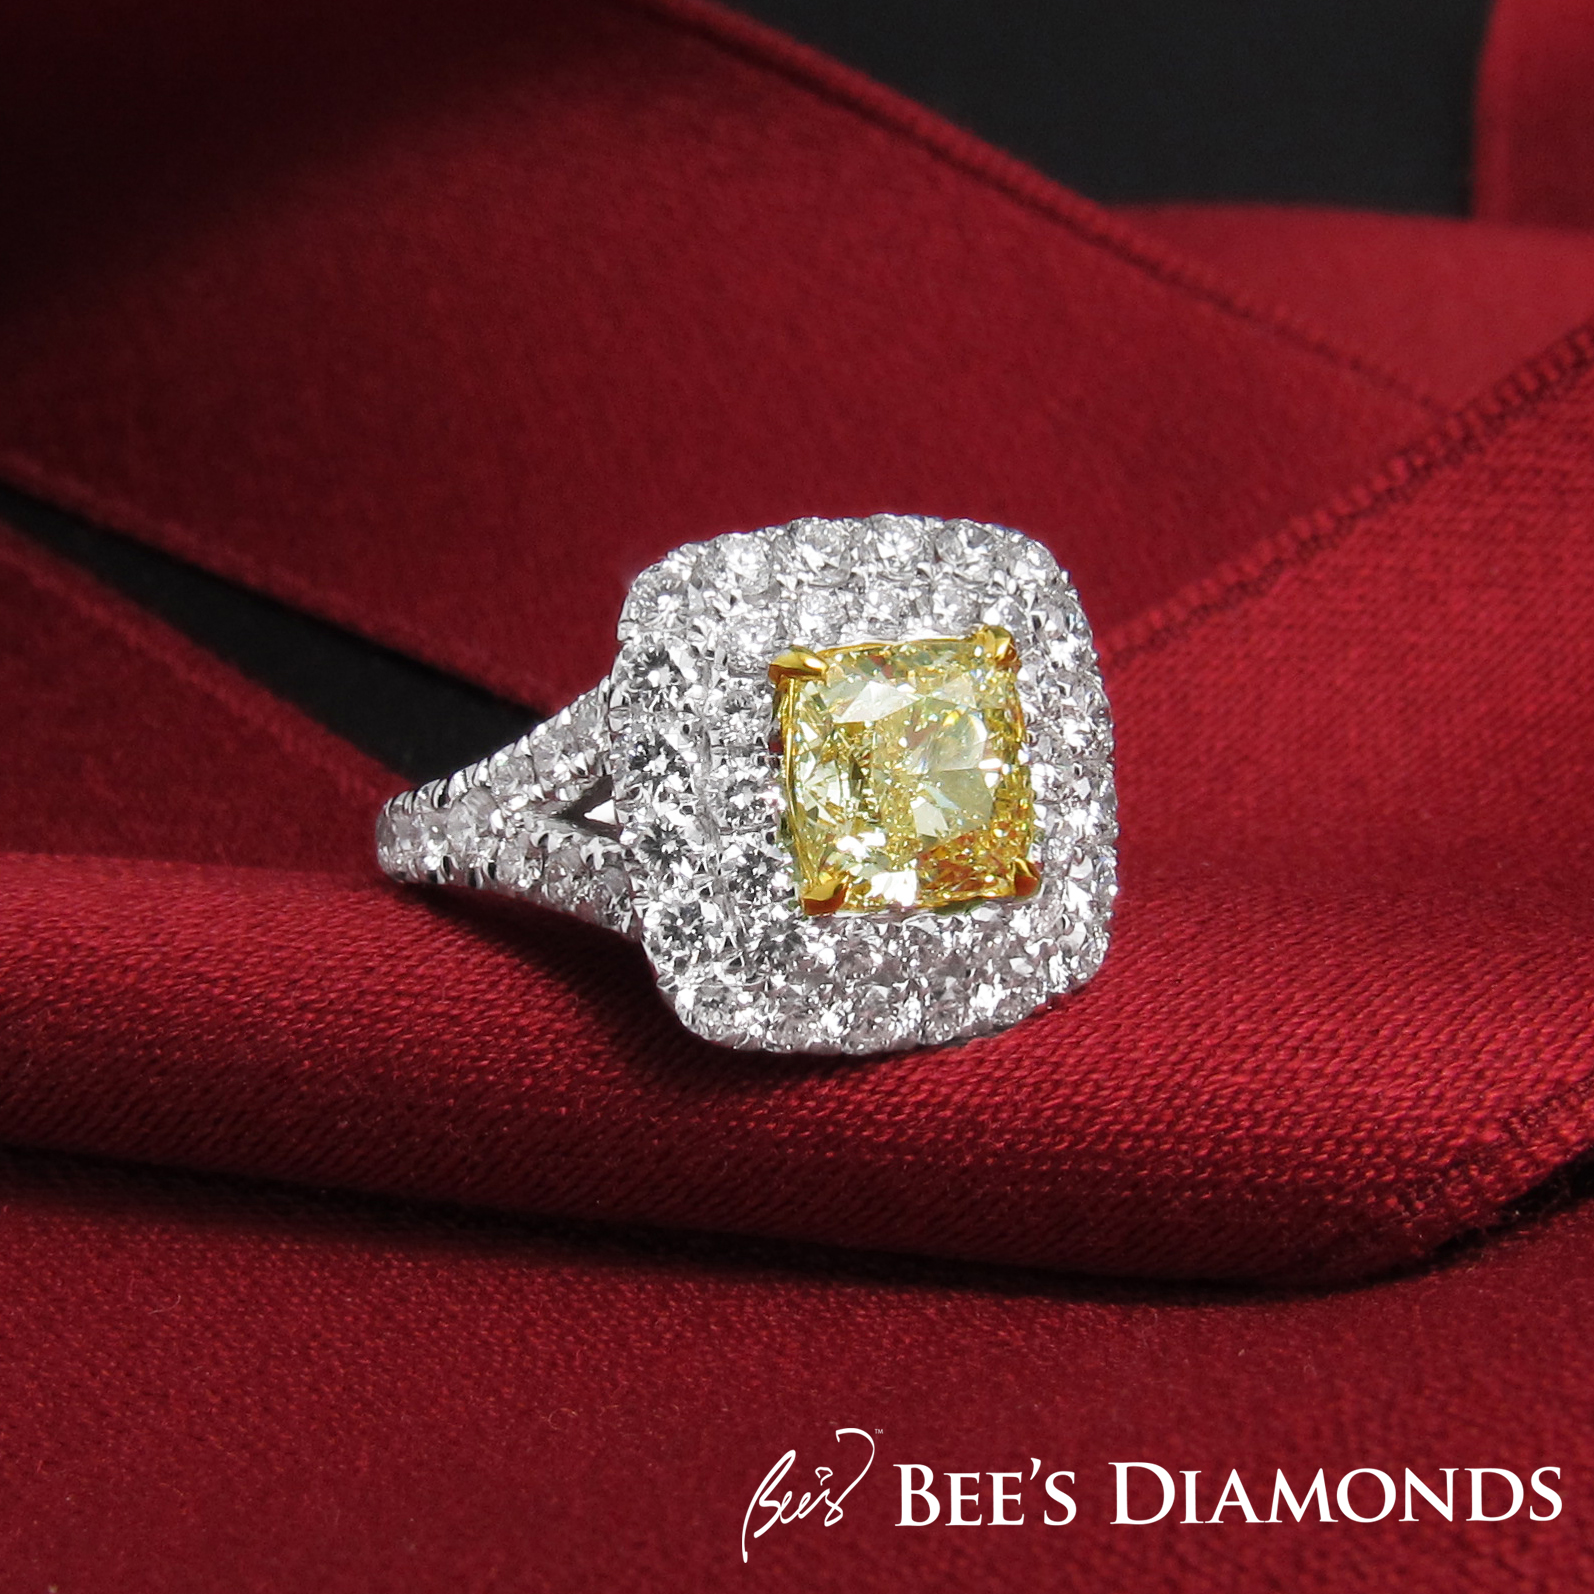 Fancy yellow, cushion cut diamond ring Tiffany, bespoke Hong Kong